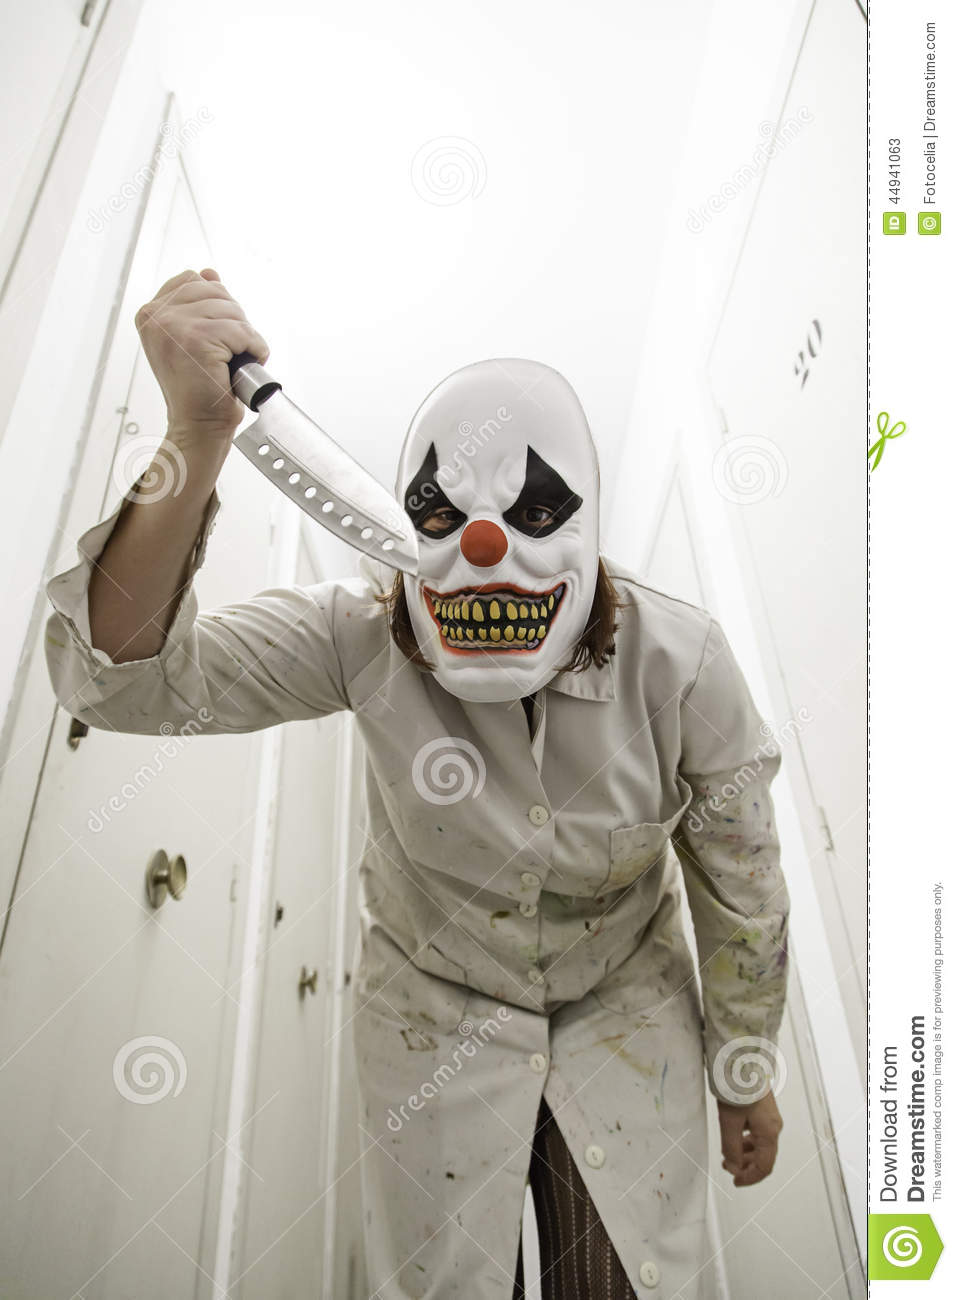 Clown knife gown stock image. Image of mysterious, murderer - 44941063